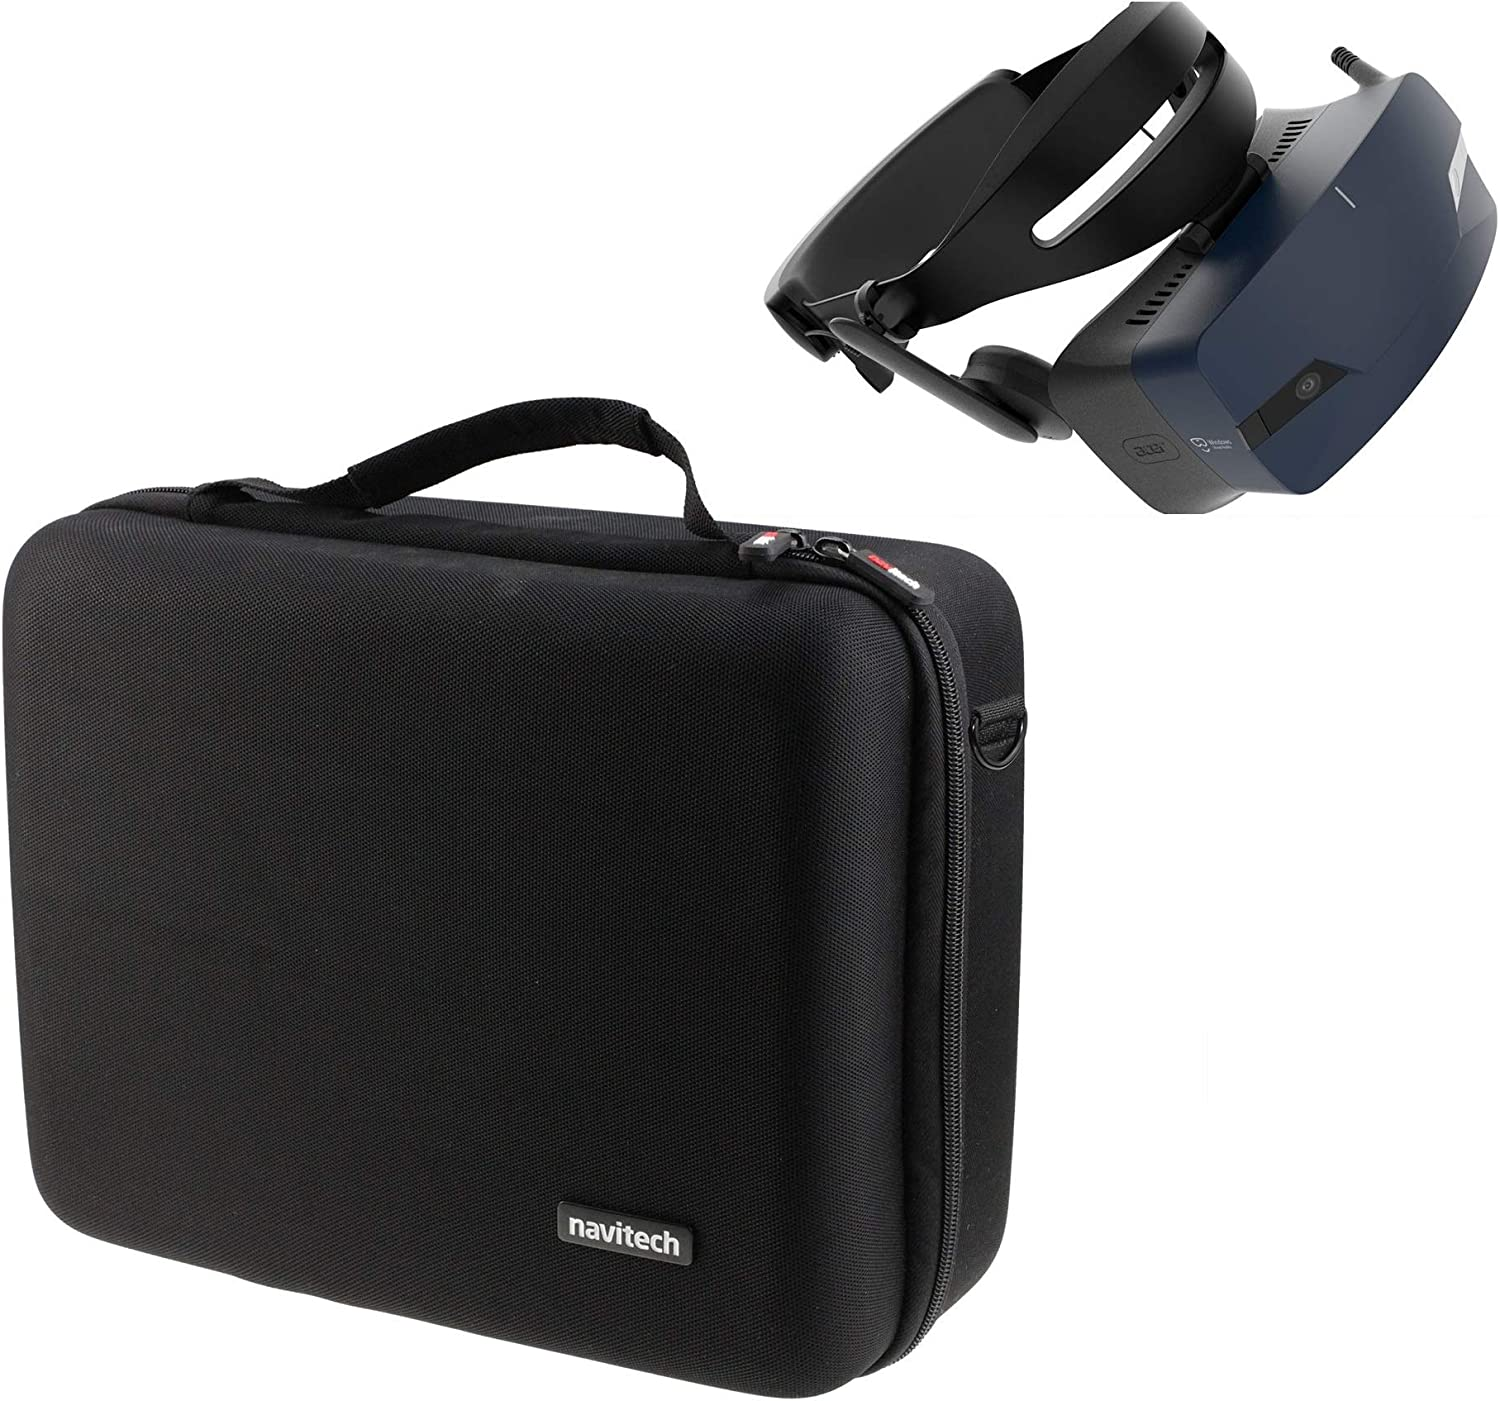 Navitech Black Heavy Duty Rugged Hard Case/Cover with Shoulder Strap Compatible with The Acer OJO 500 Windows Mixed Reality/VR Headset